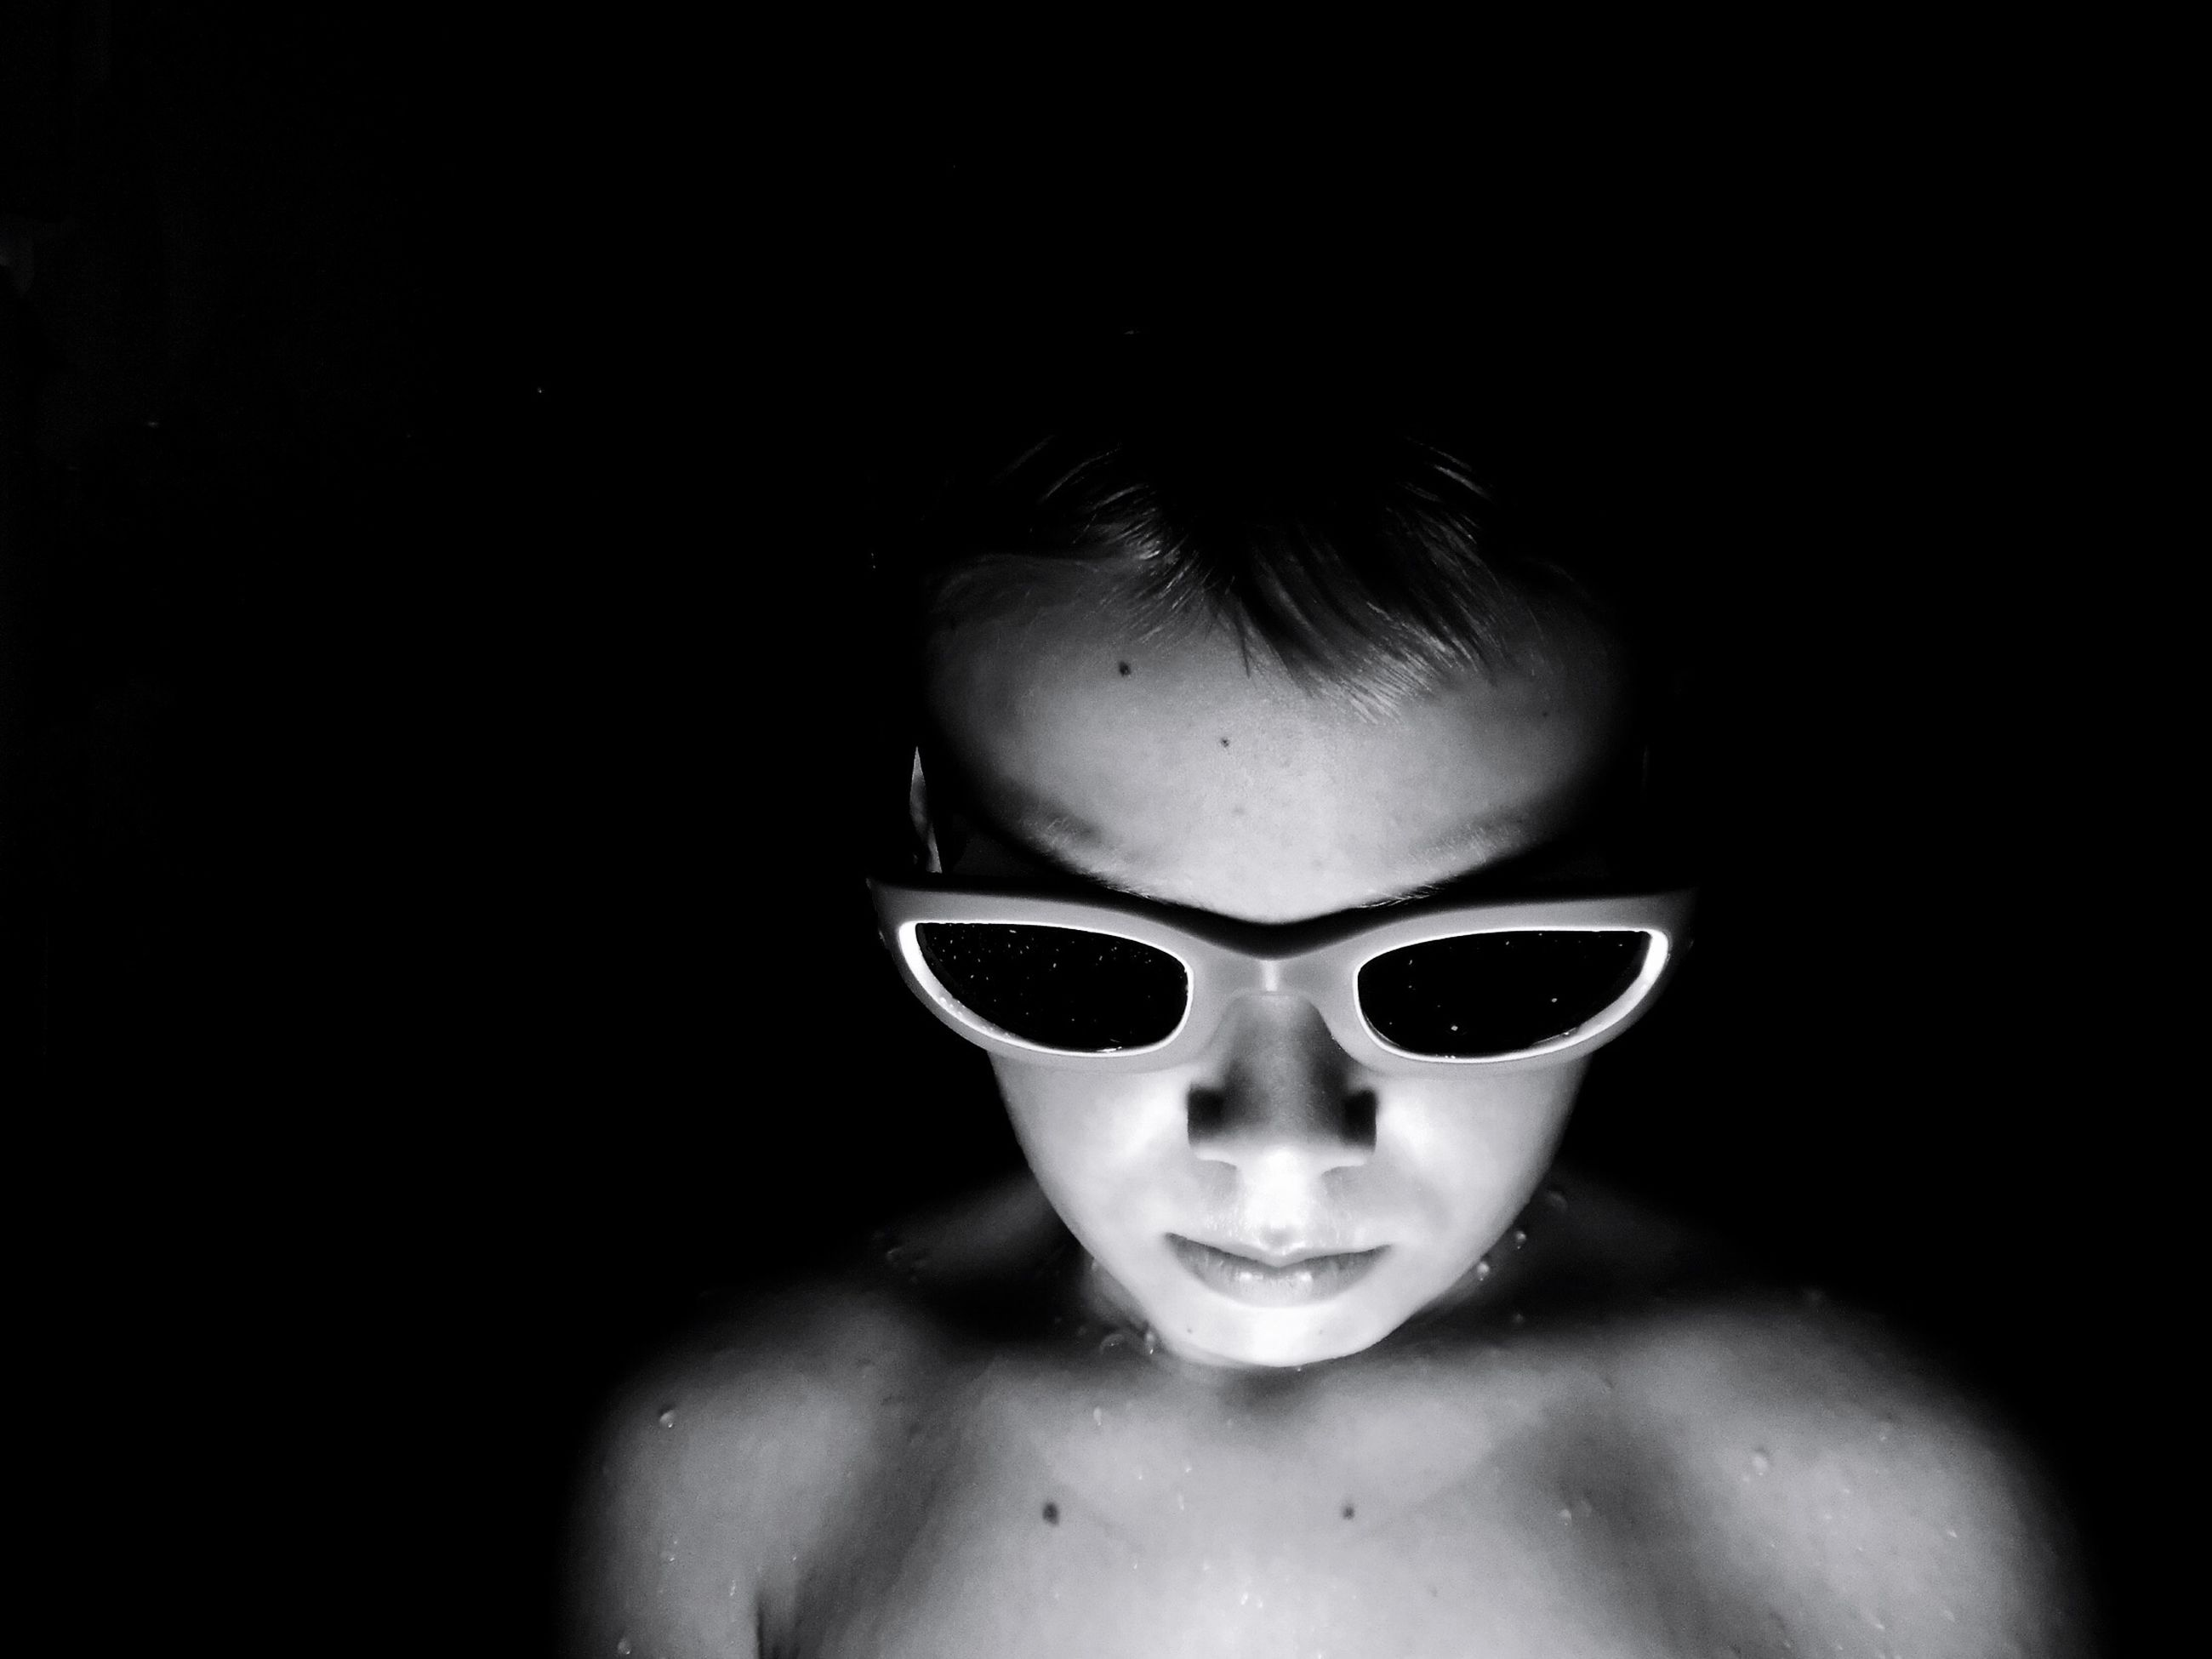 portrait, headshot, childhood, shirtless, boys, one person, child, front view, males, indoors, men, domestic room, copy space, lifestyles, real people, close-up, black background, innocence, dark